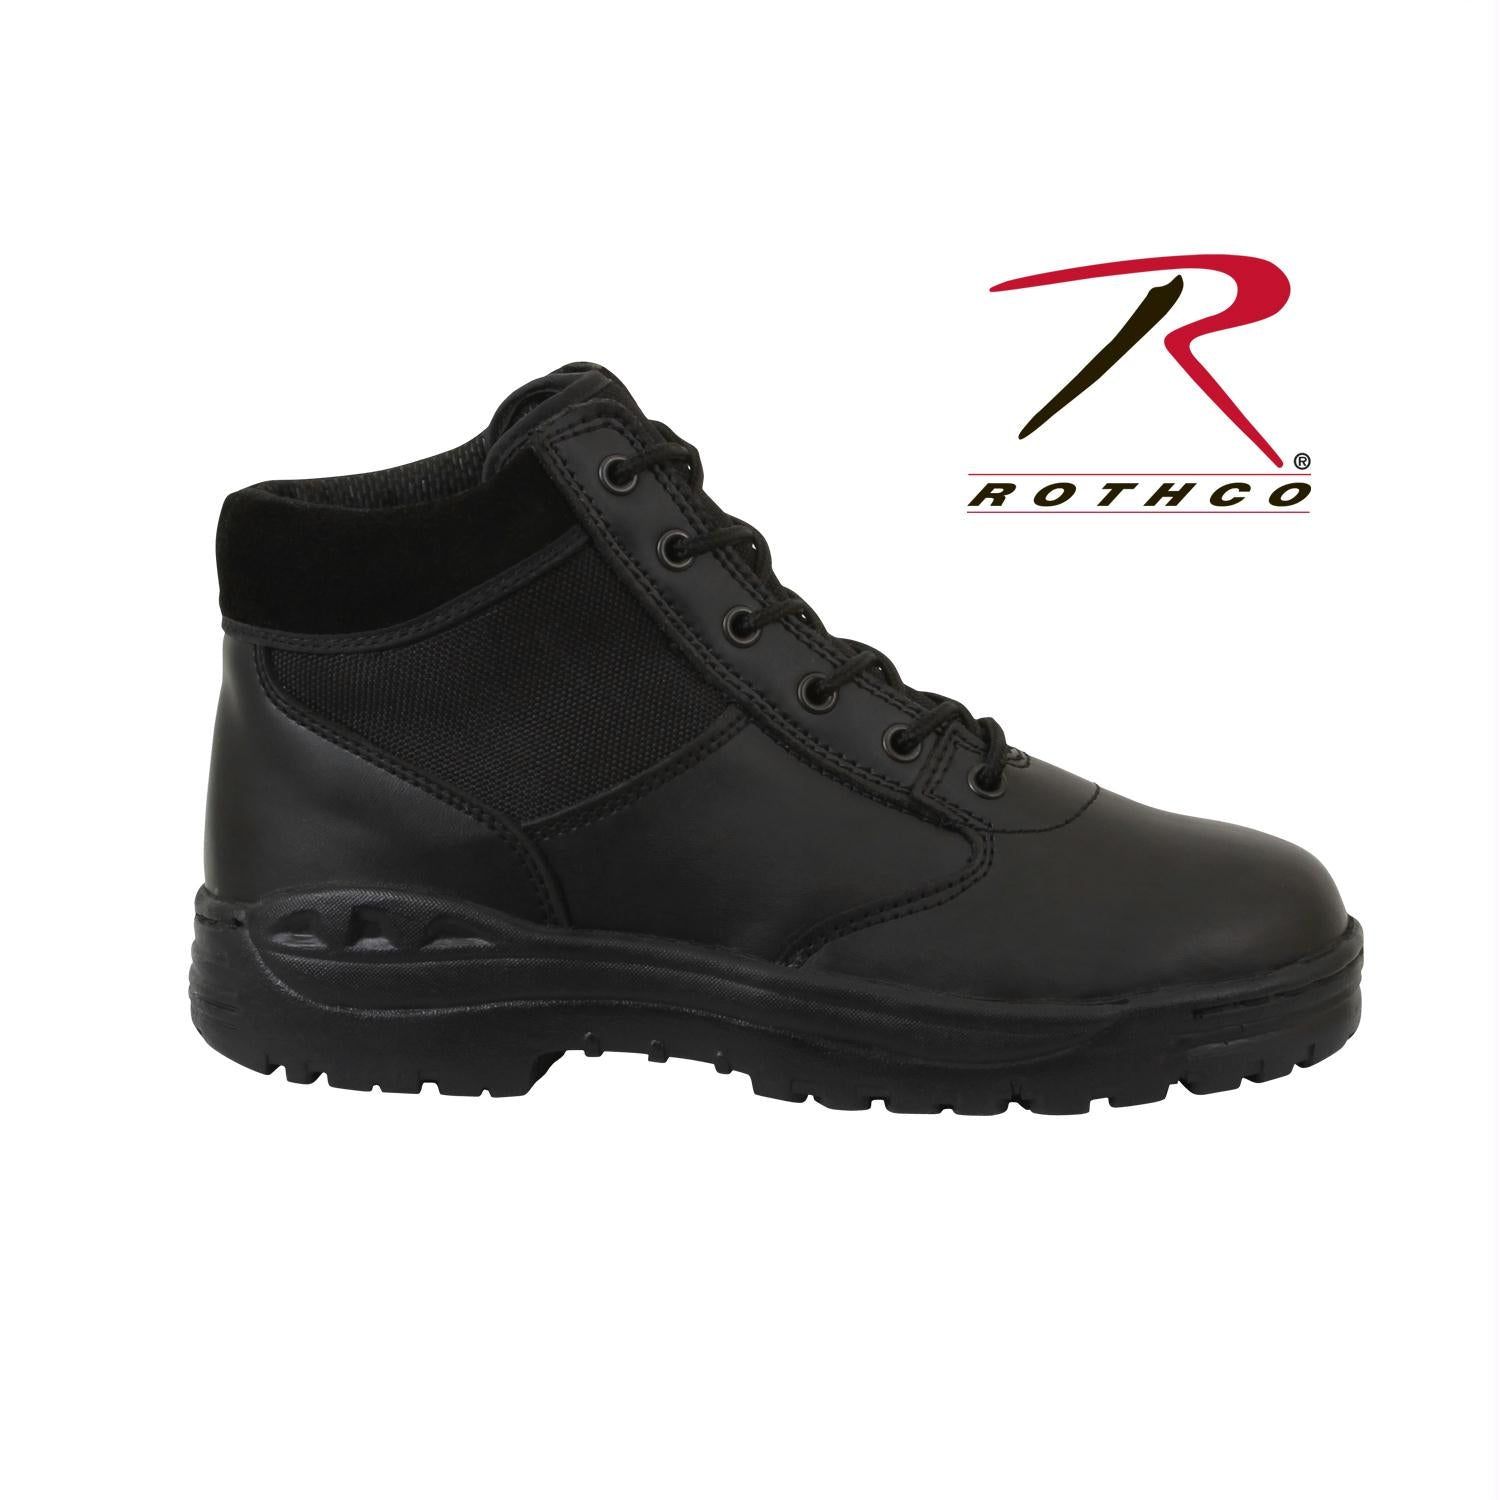 Rothco Forced Entry Security Boot / 6'' - 9